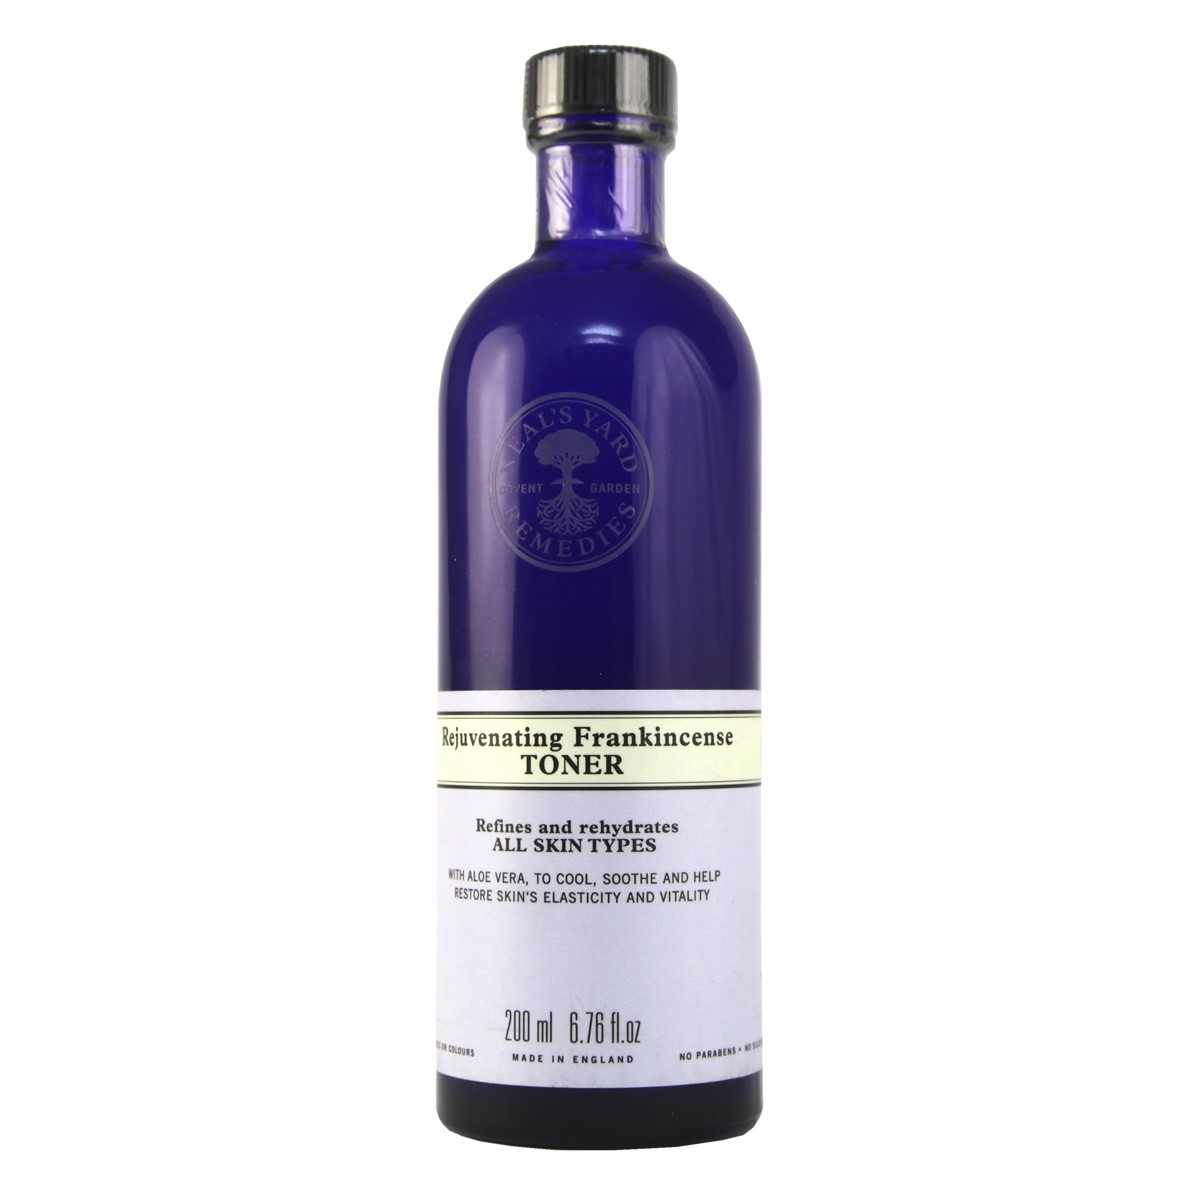 Neal's Yard Rejuvenating Frankincense Toner